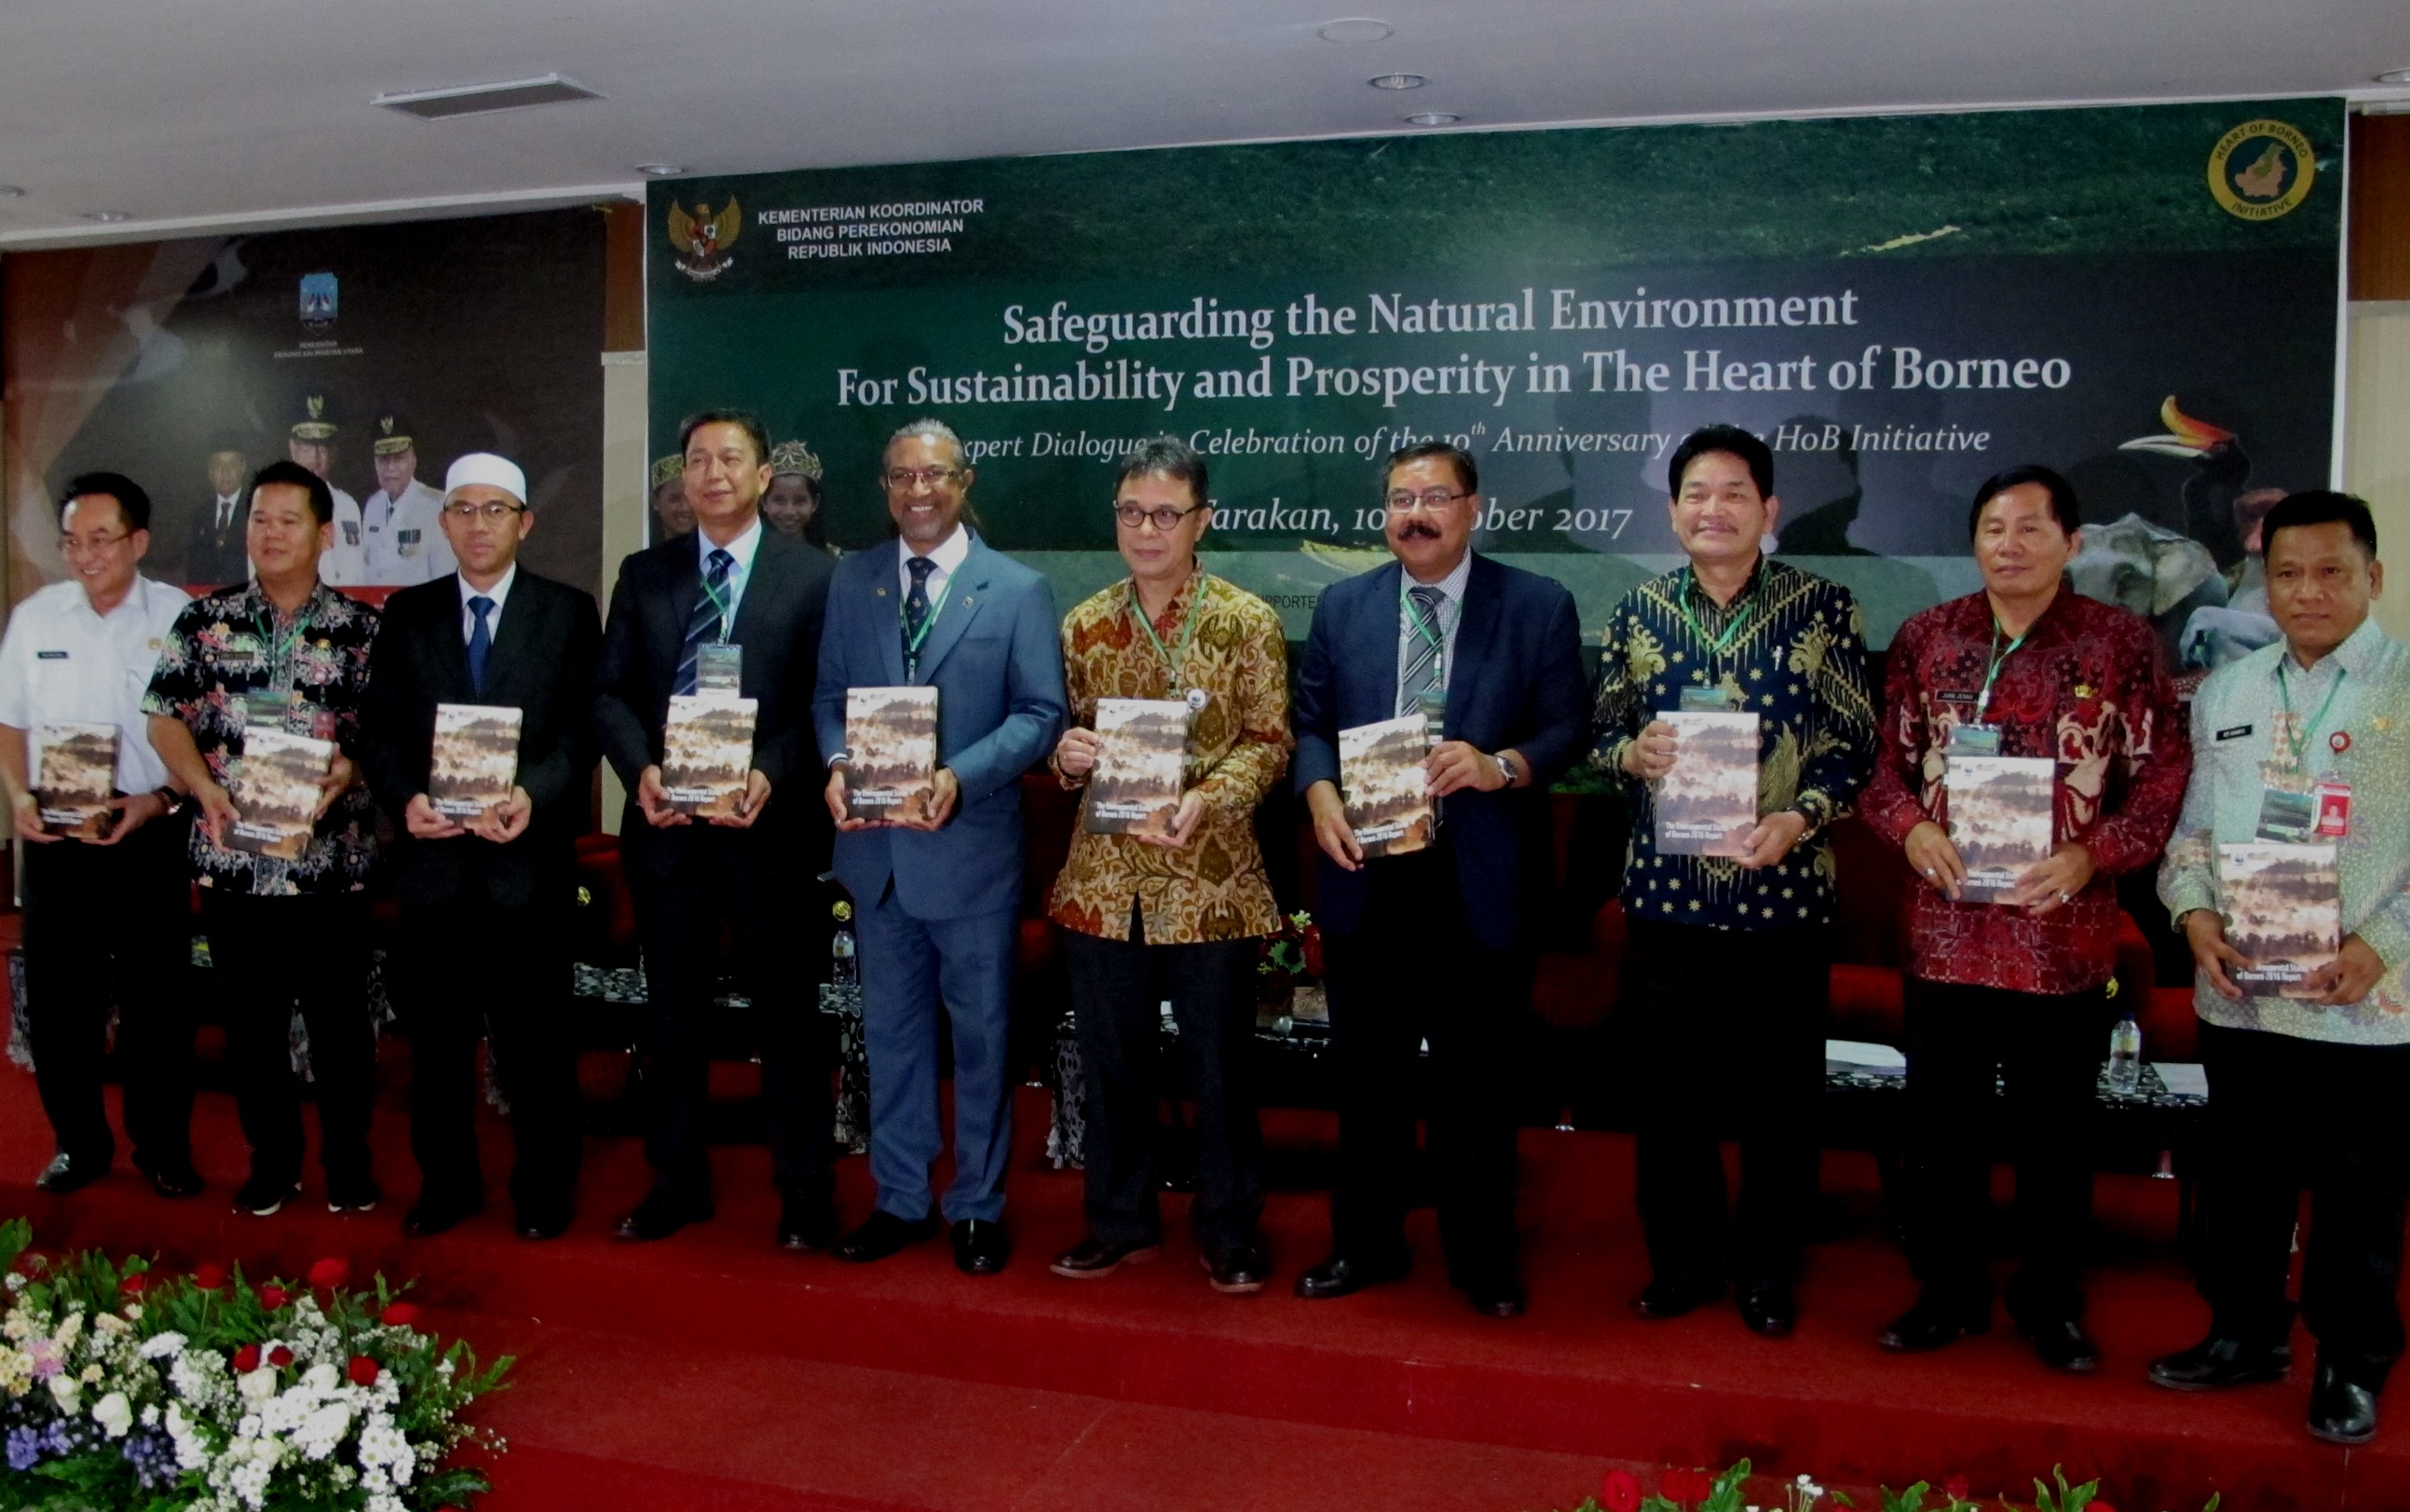 heart of borneo, hob, wwf indonesia, wwf malaysia, trilateral meeting, expert dialogue